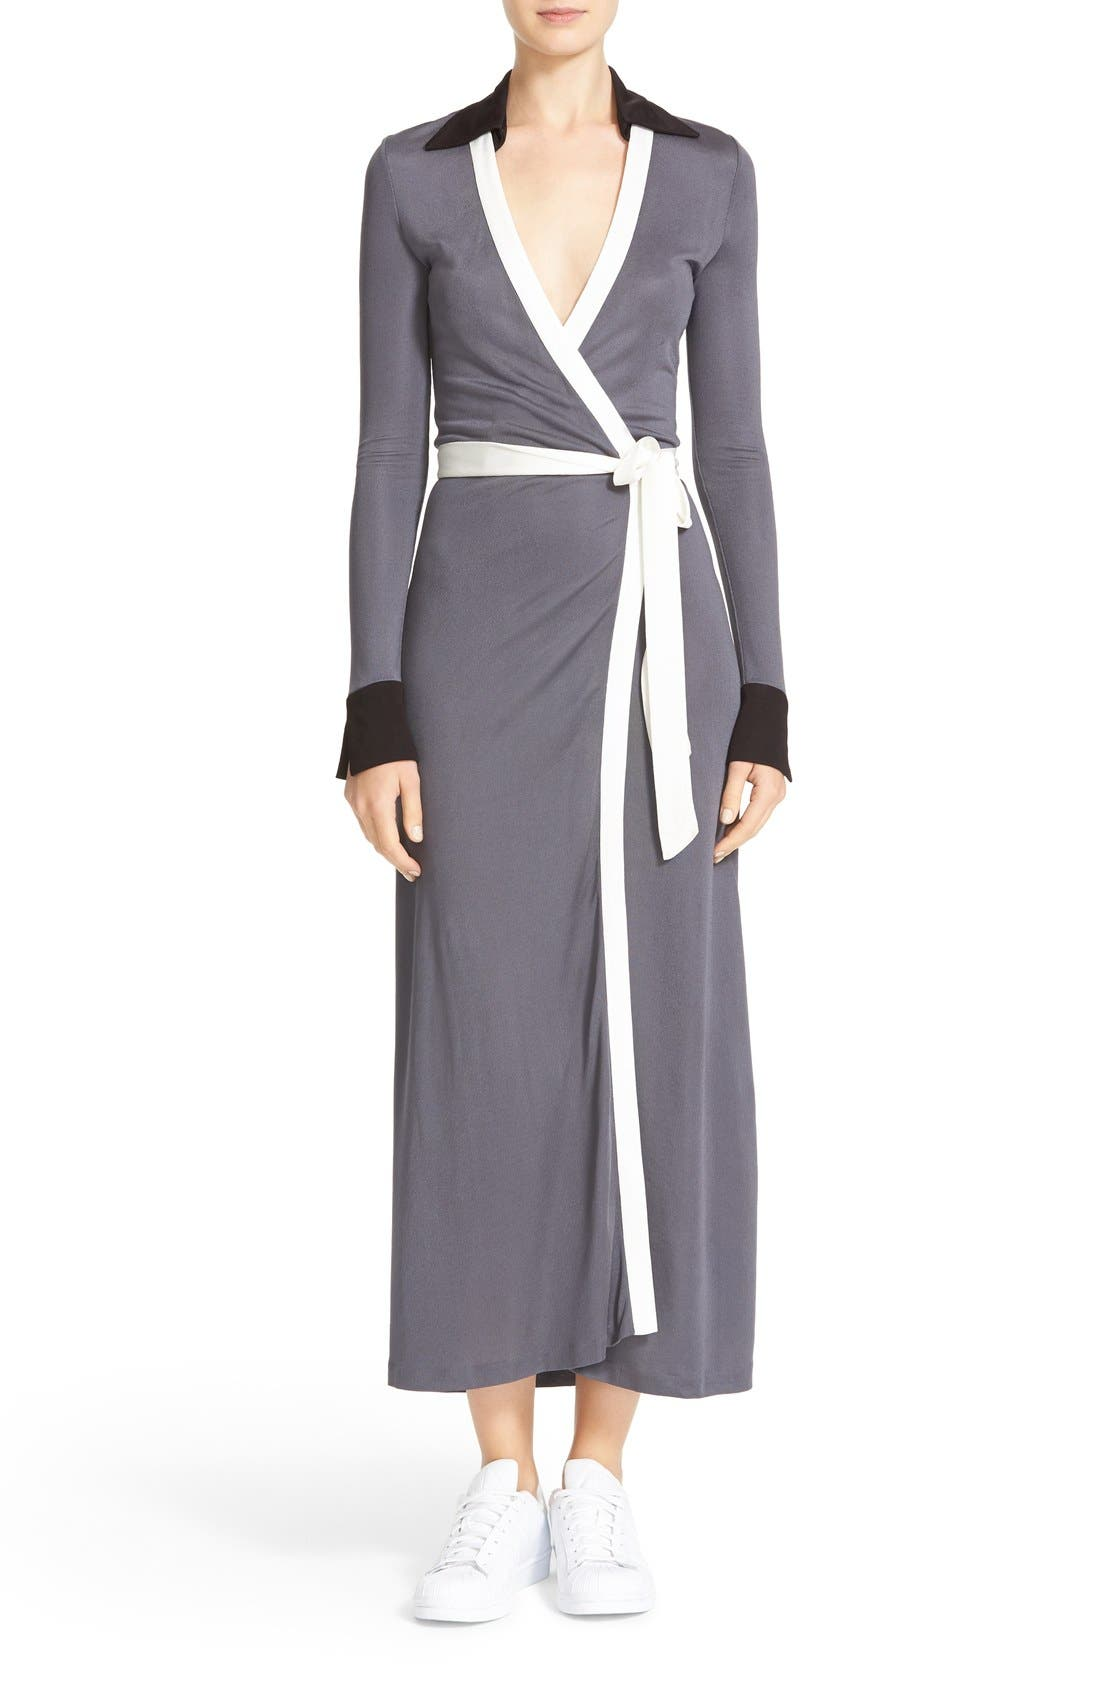 DIANE VON FURSTENBERG Cybil Two Wrap Dress